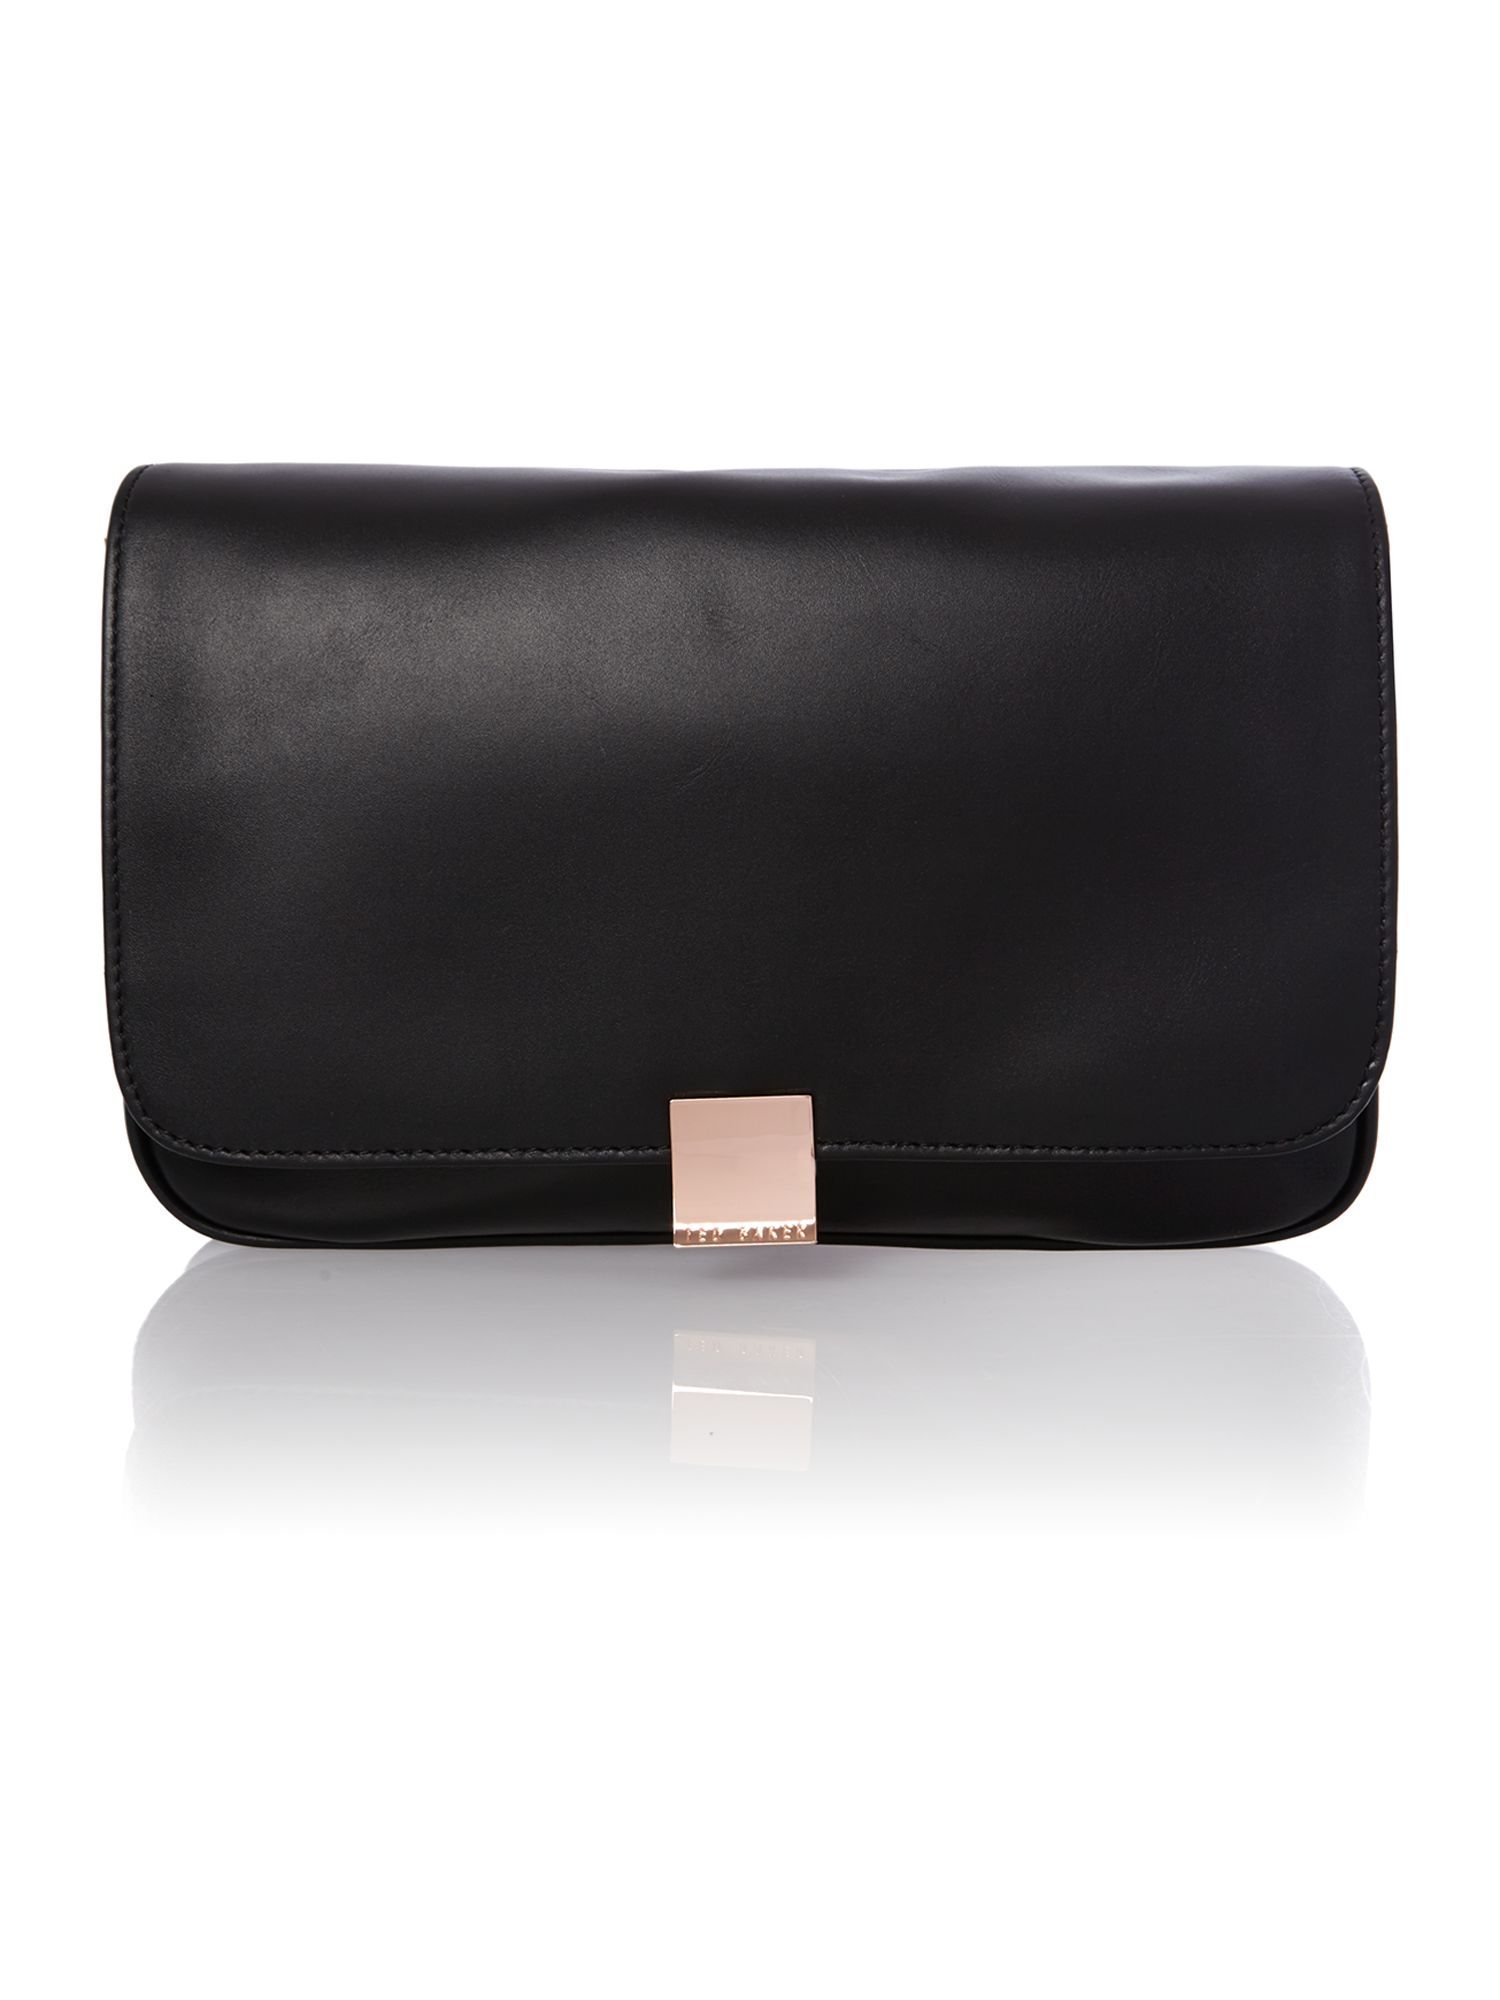 Large black leather cross body bag